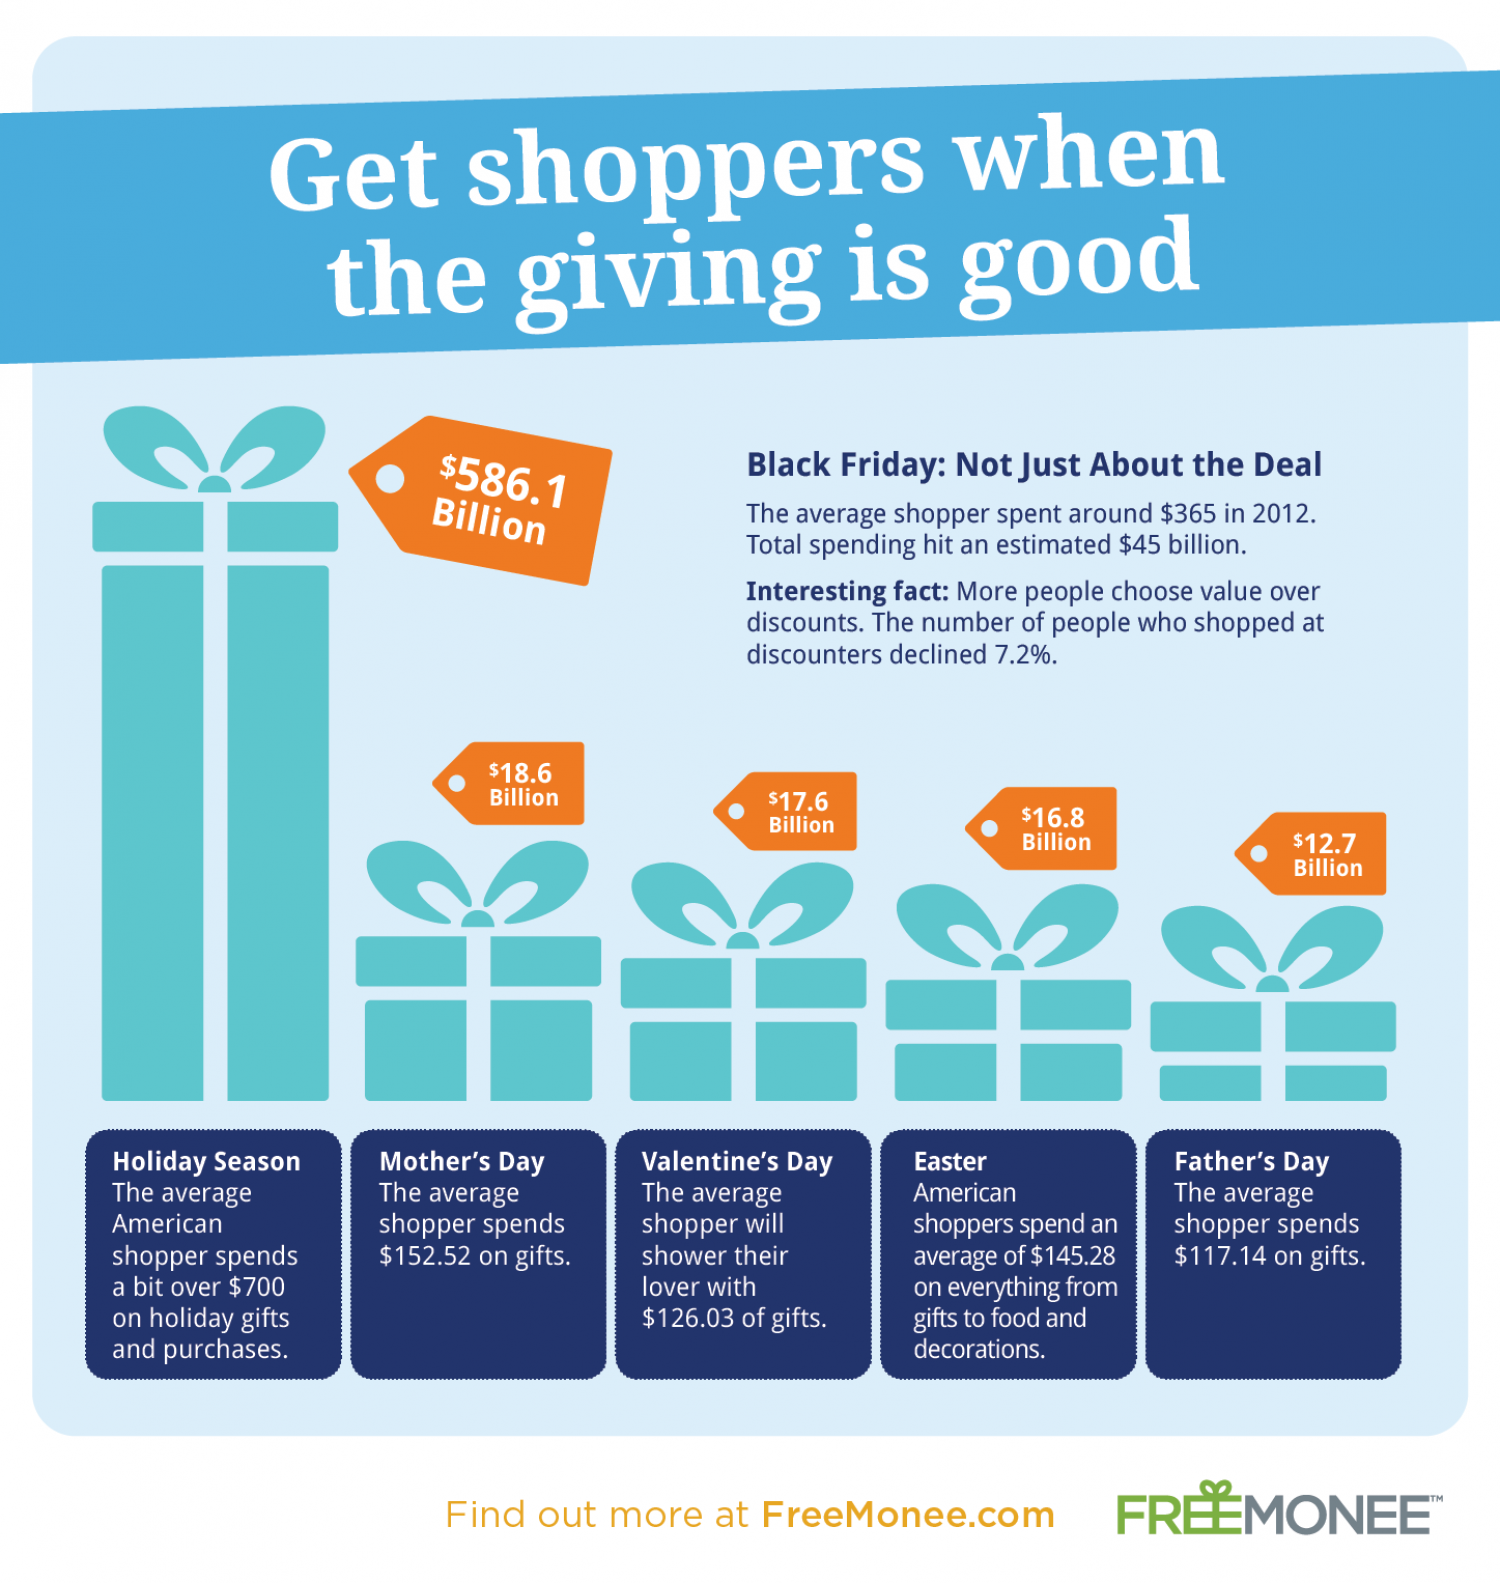 Get Shoppers When the Giving is Good Infographic